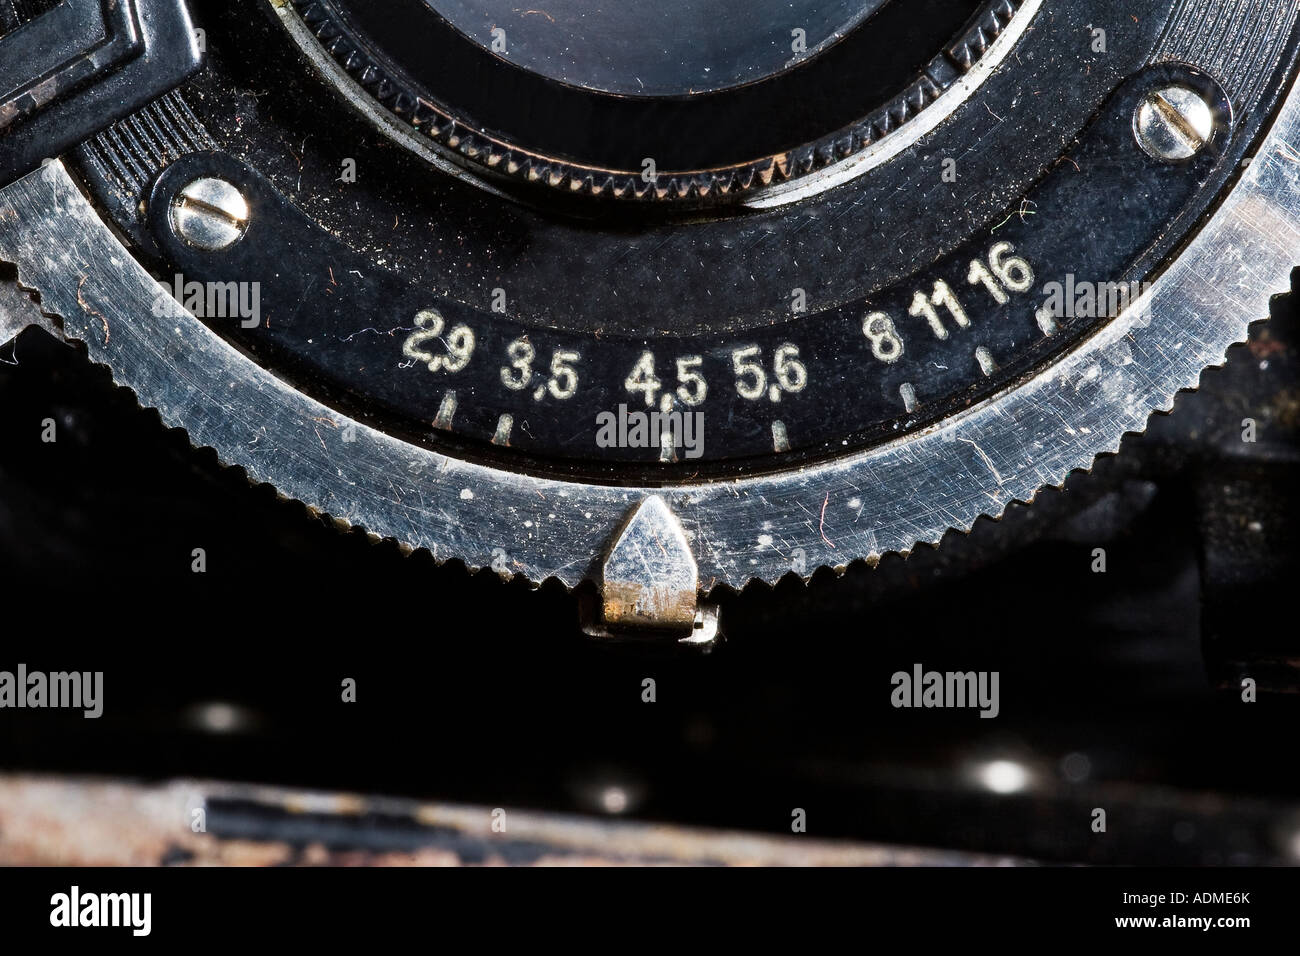 Aperture adjustment at an old Camera with bellow - Stock Image